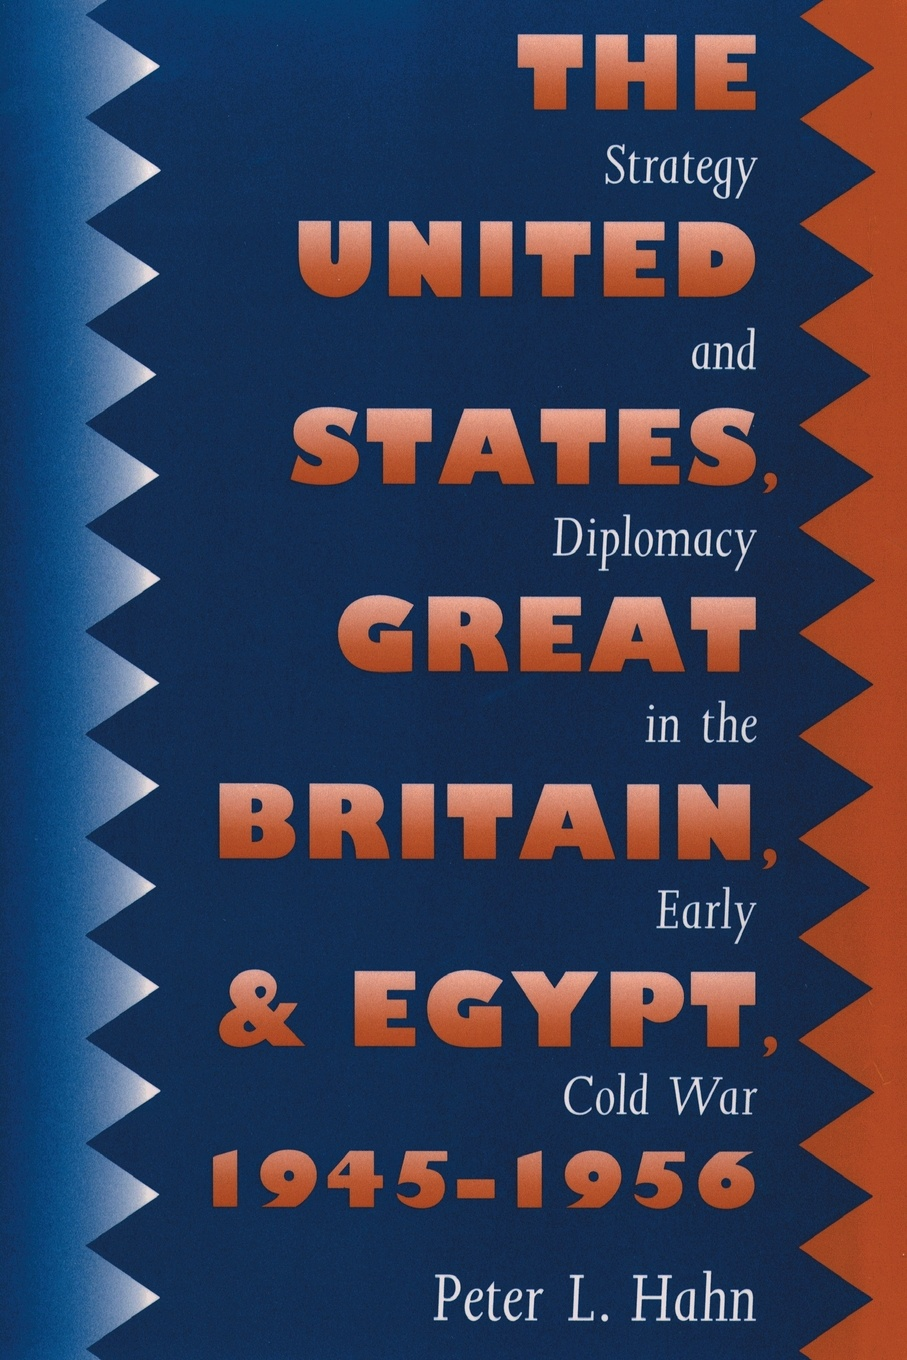 Peter L. Hahn The United States, Great Britain, and Egypt, 1945-1956. Strategy and Diplomacy in the Early Cold War exterminism and cold war